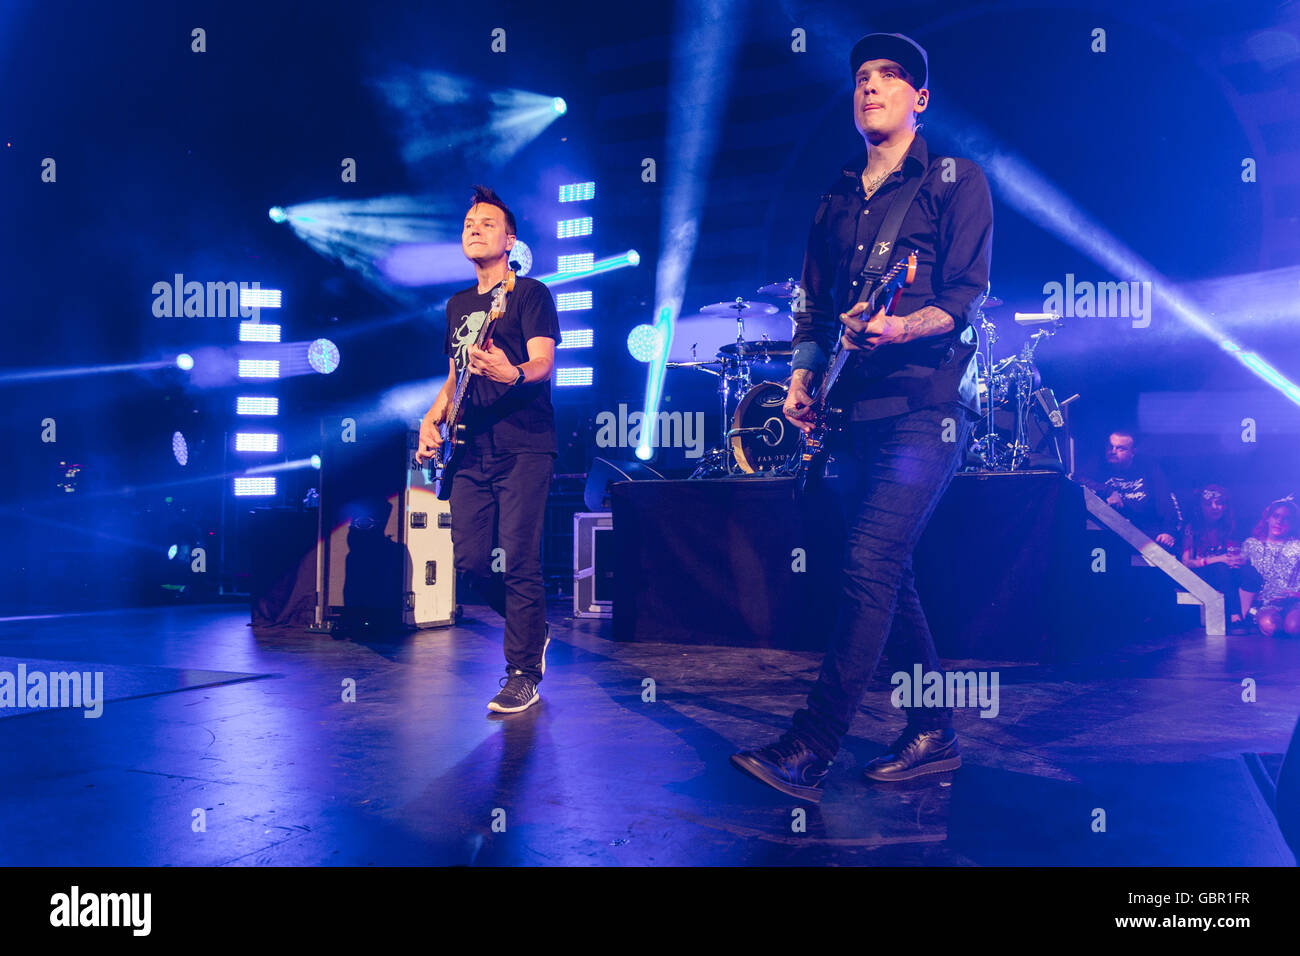 Milwaukee, Wisconsin, USA. 5th July, 2016. MARK HOPPUS (L) and MATT SKIBA of Blink-182 perform live at Henry Maier Stock Photo